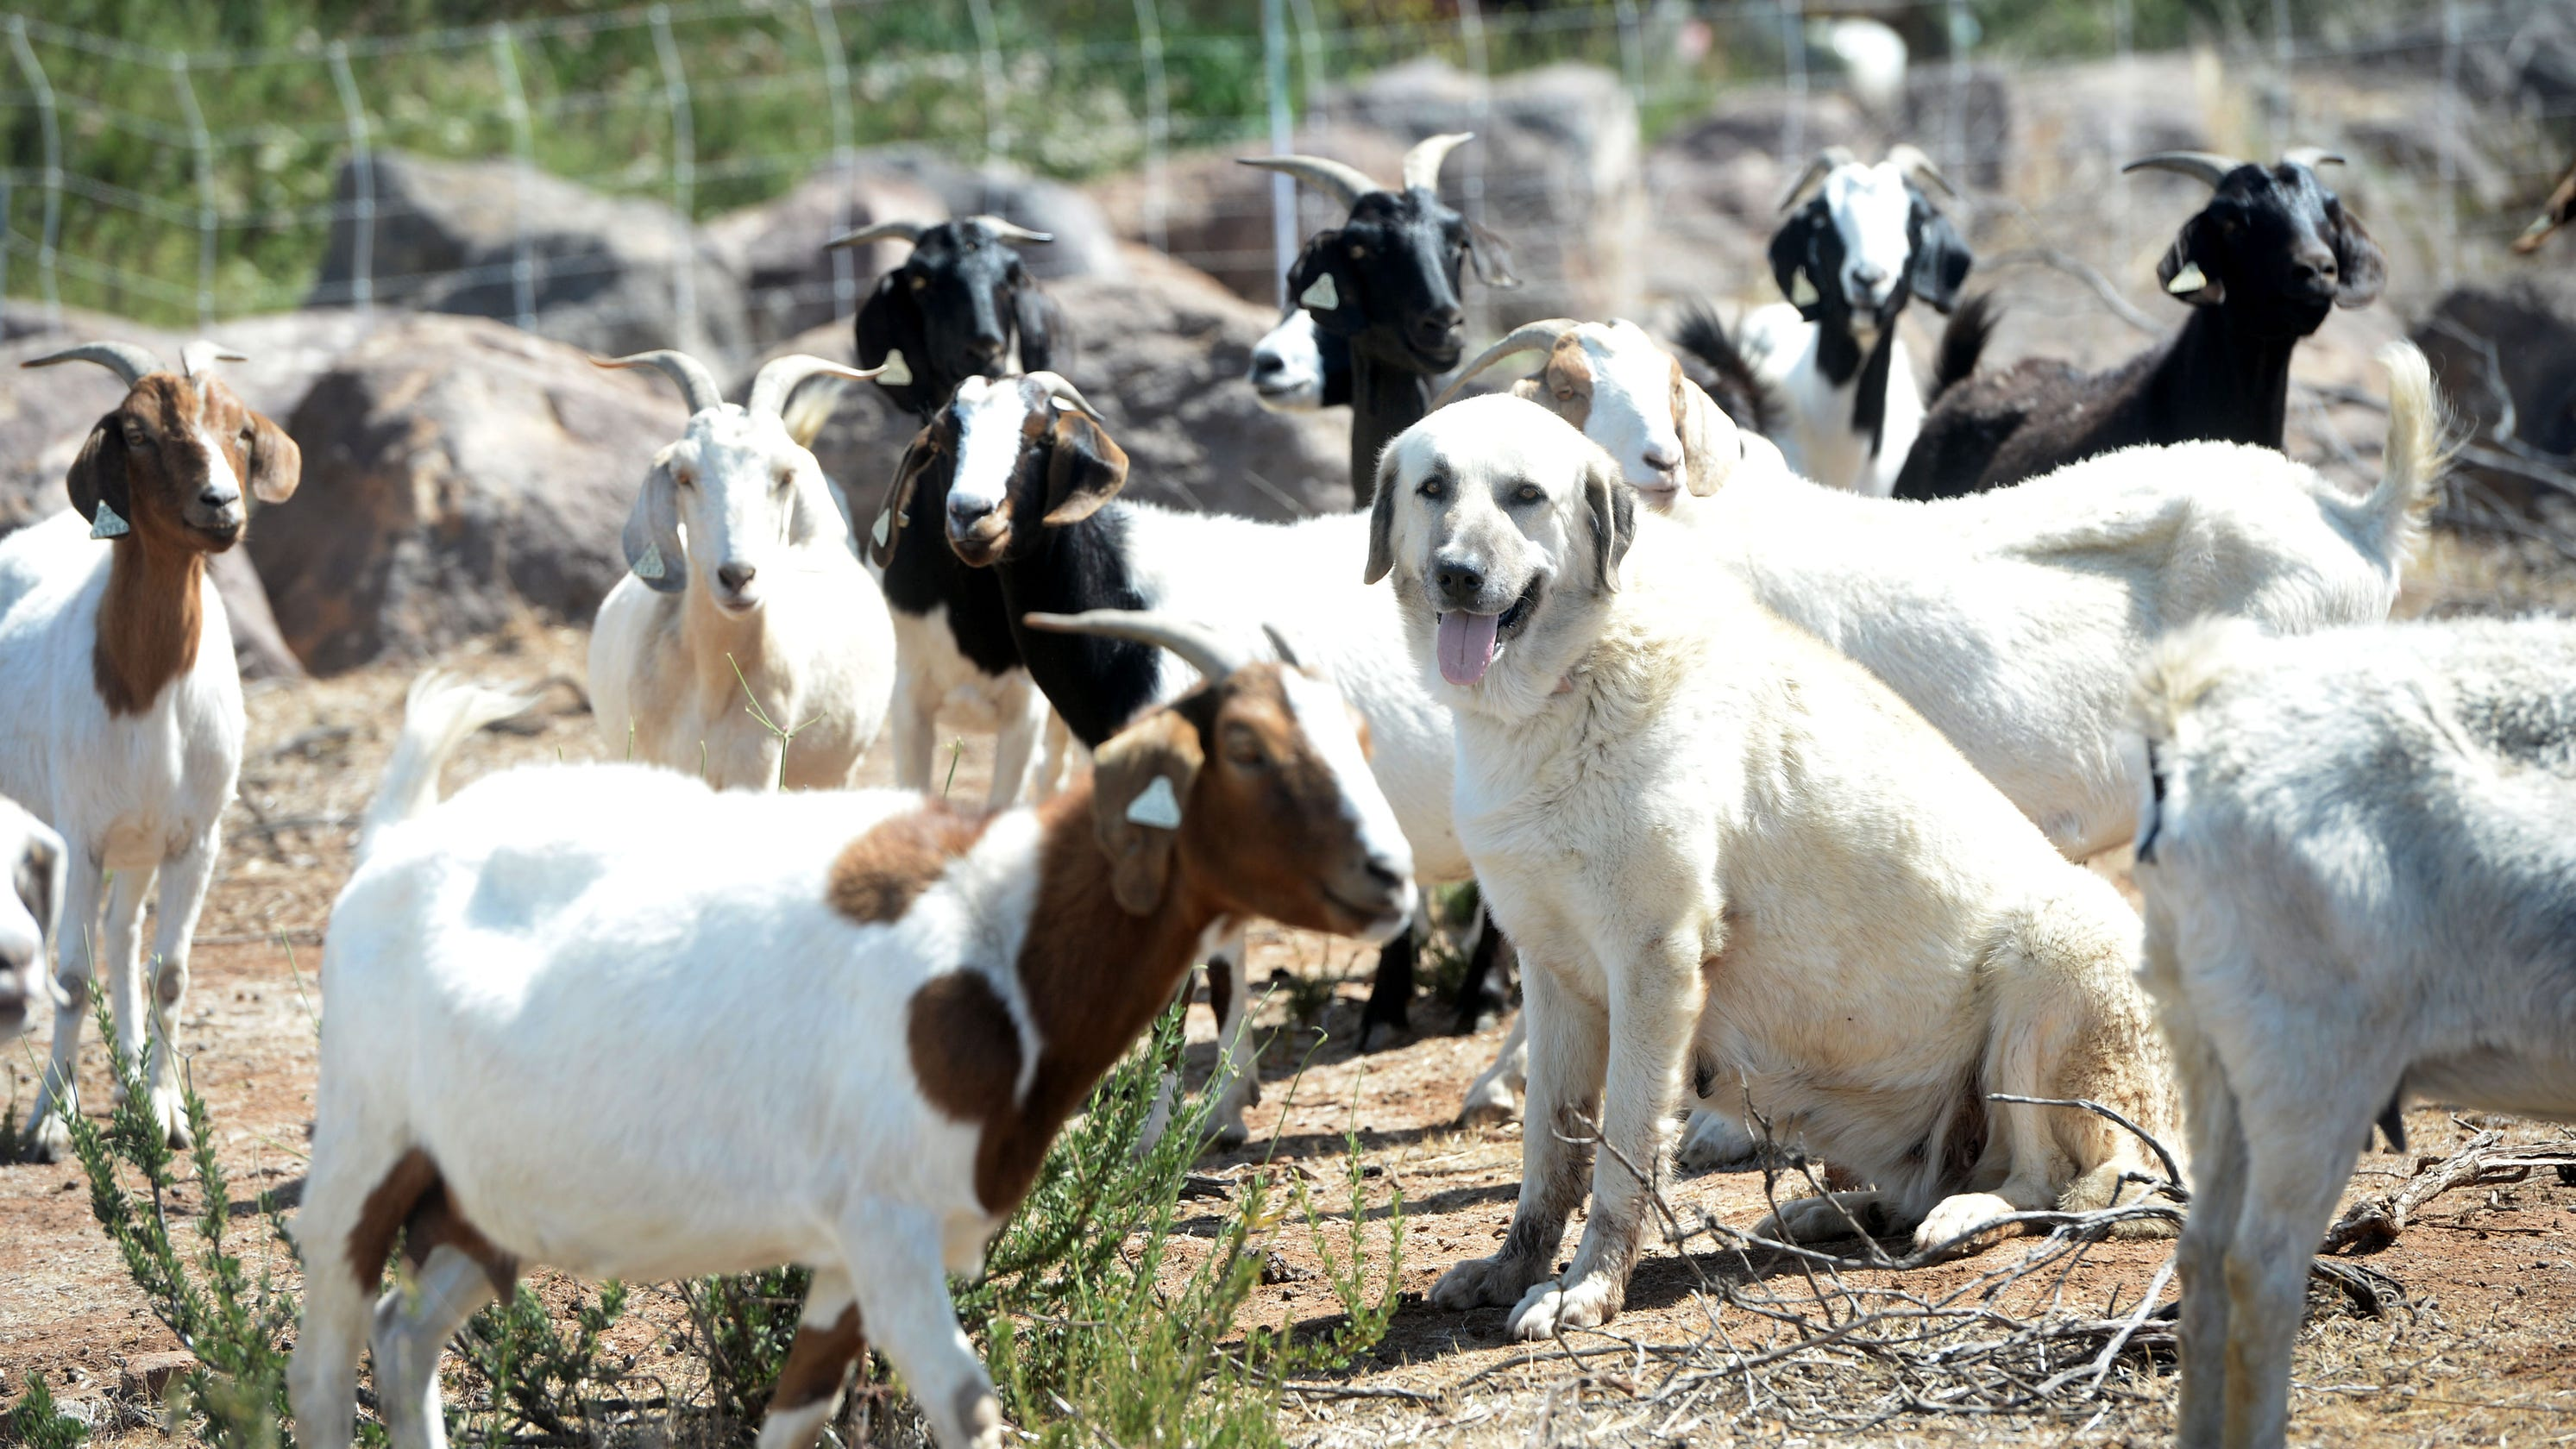 Reagan Presidential library gets its goats; animals help clear dry brush